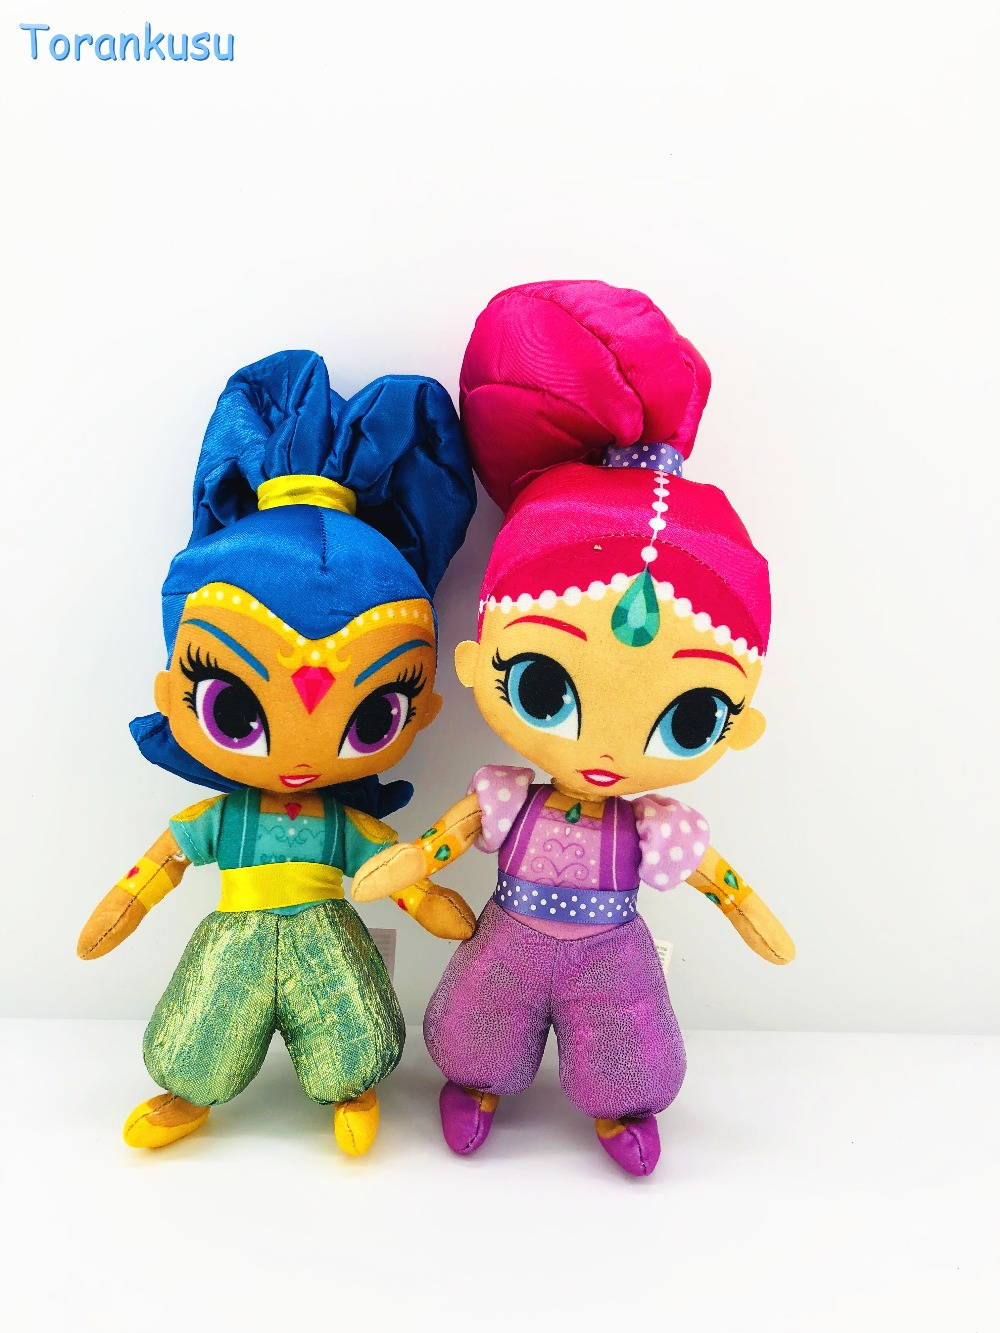 Authentic Shimmer Sister Family Plush Toys Sister Shimmer And Shine Stuffed Toys Plush Doll Christmas Gift 30cm